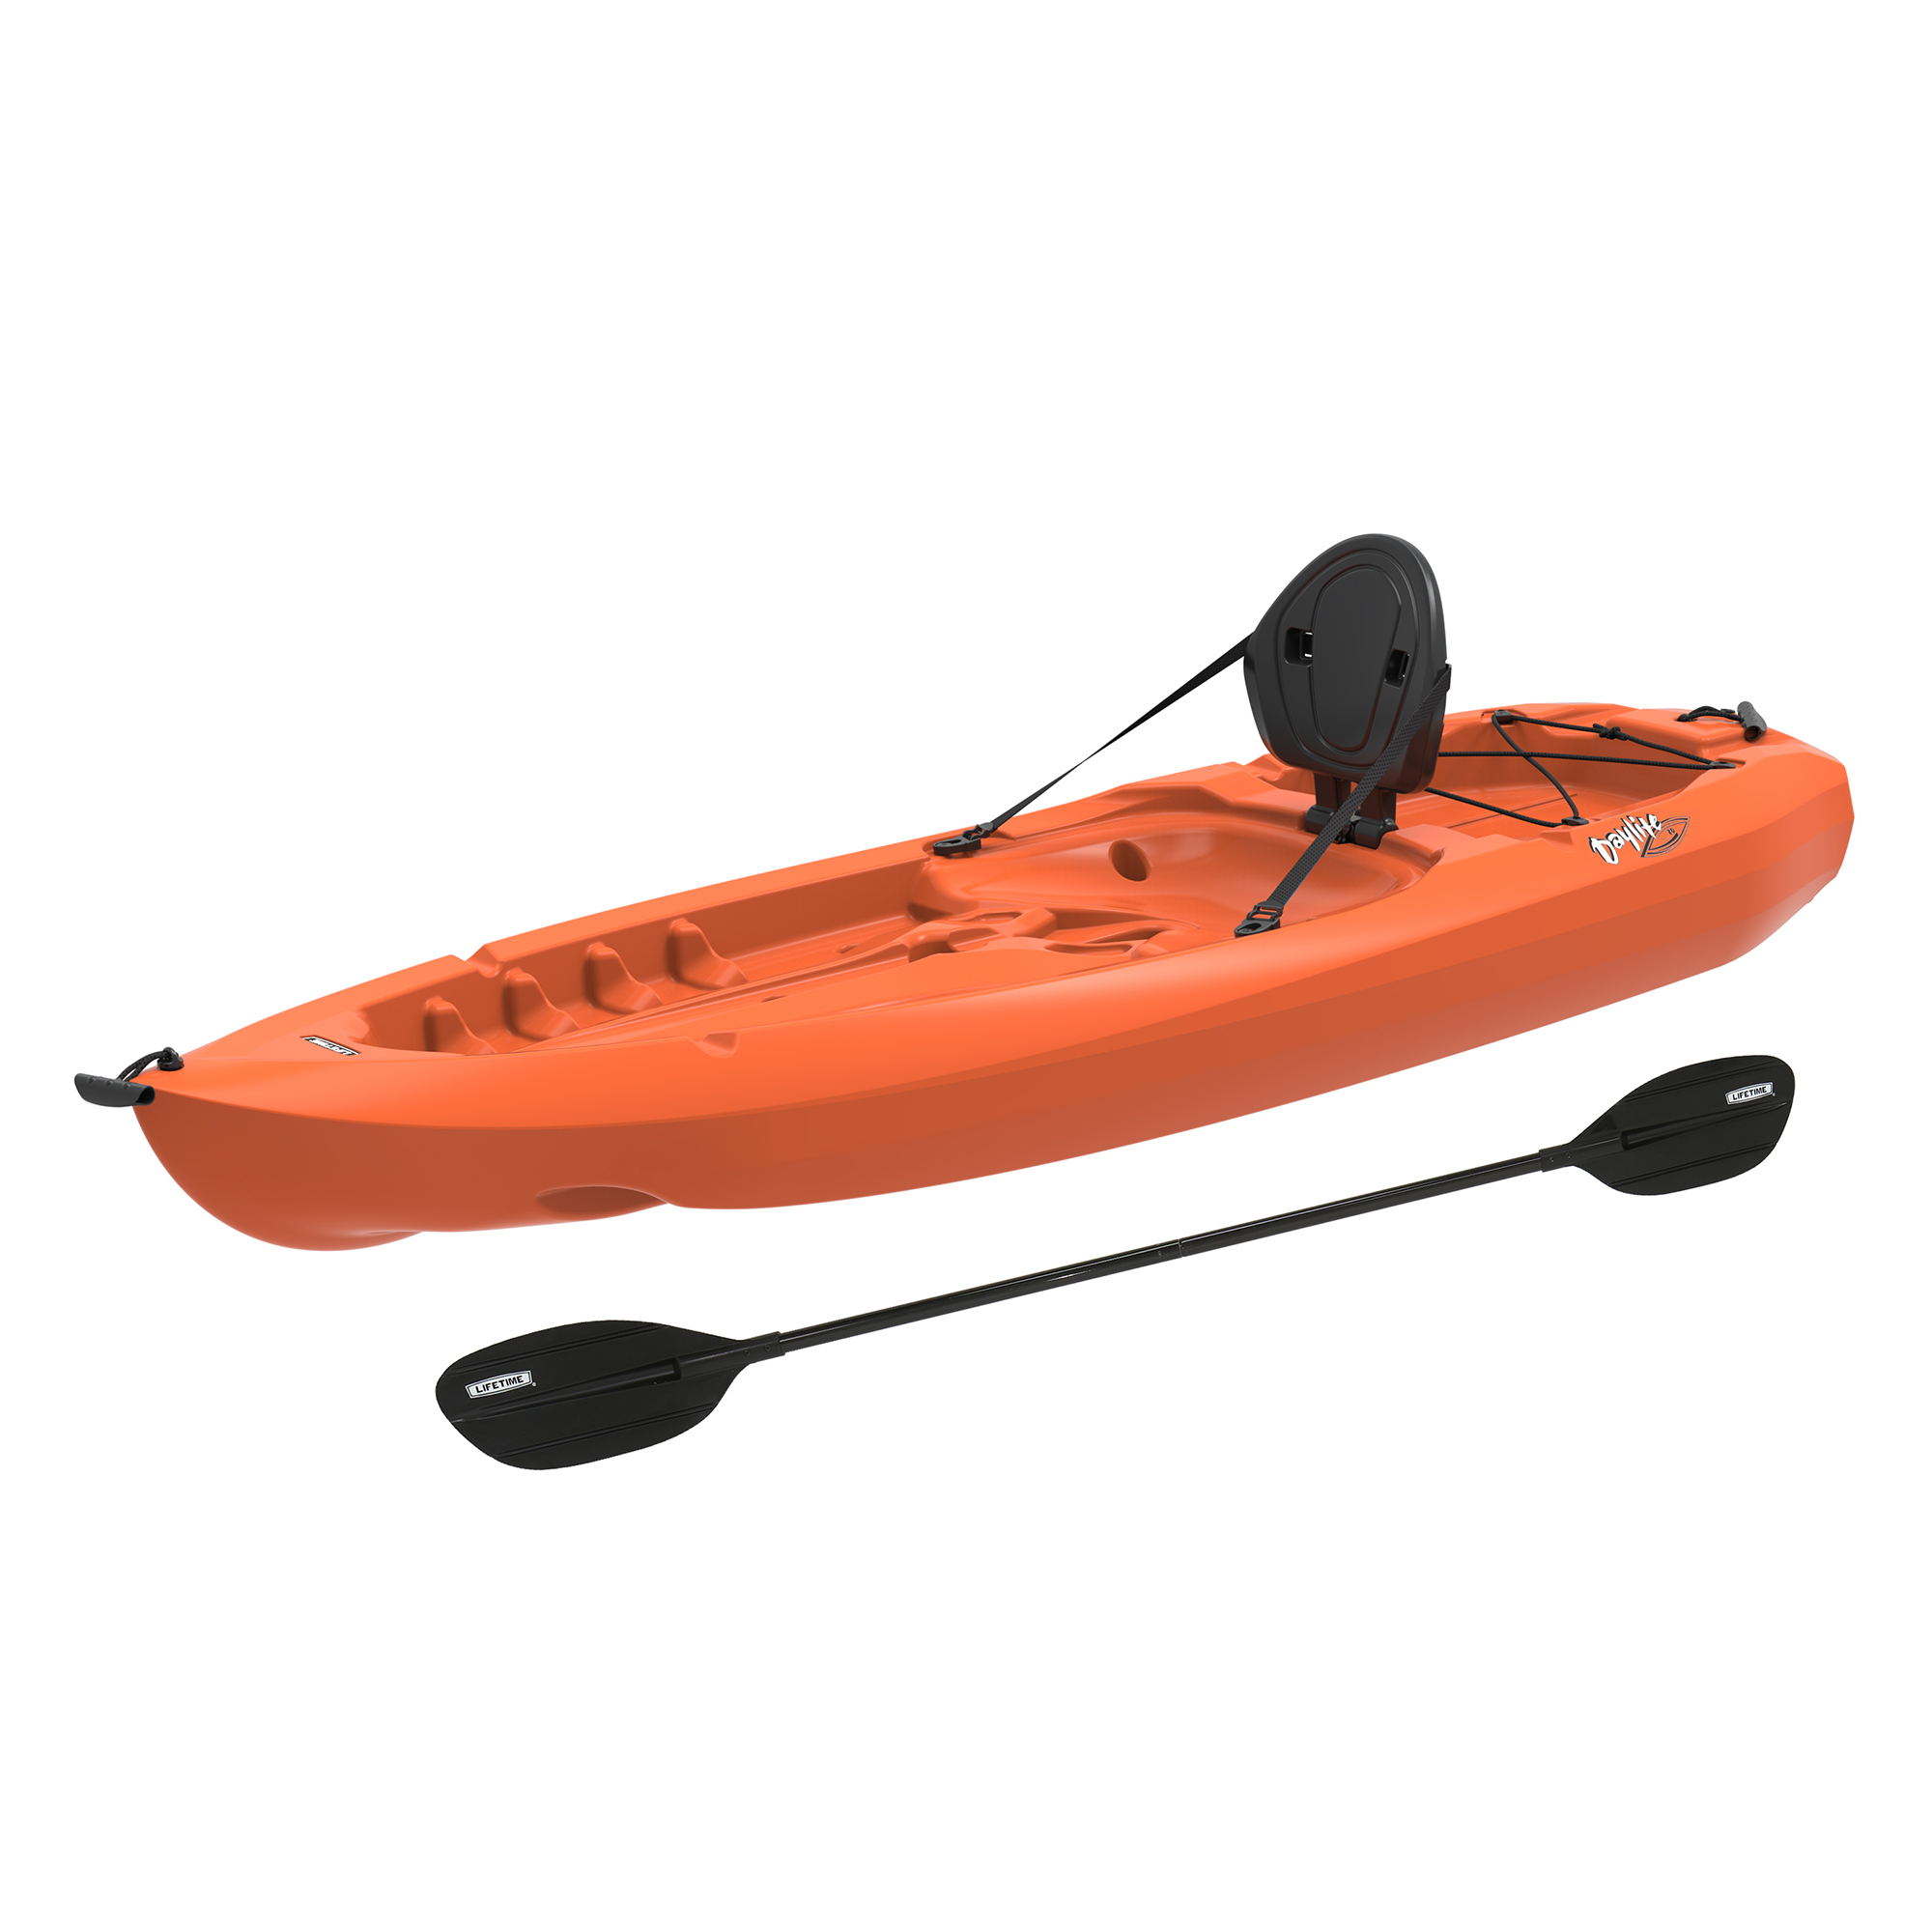 Lifetime 8' Daylite Kayak, Orange with Bonus Paddle, 90706